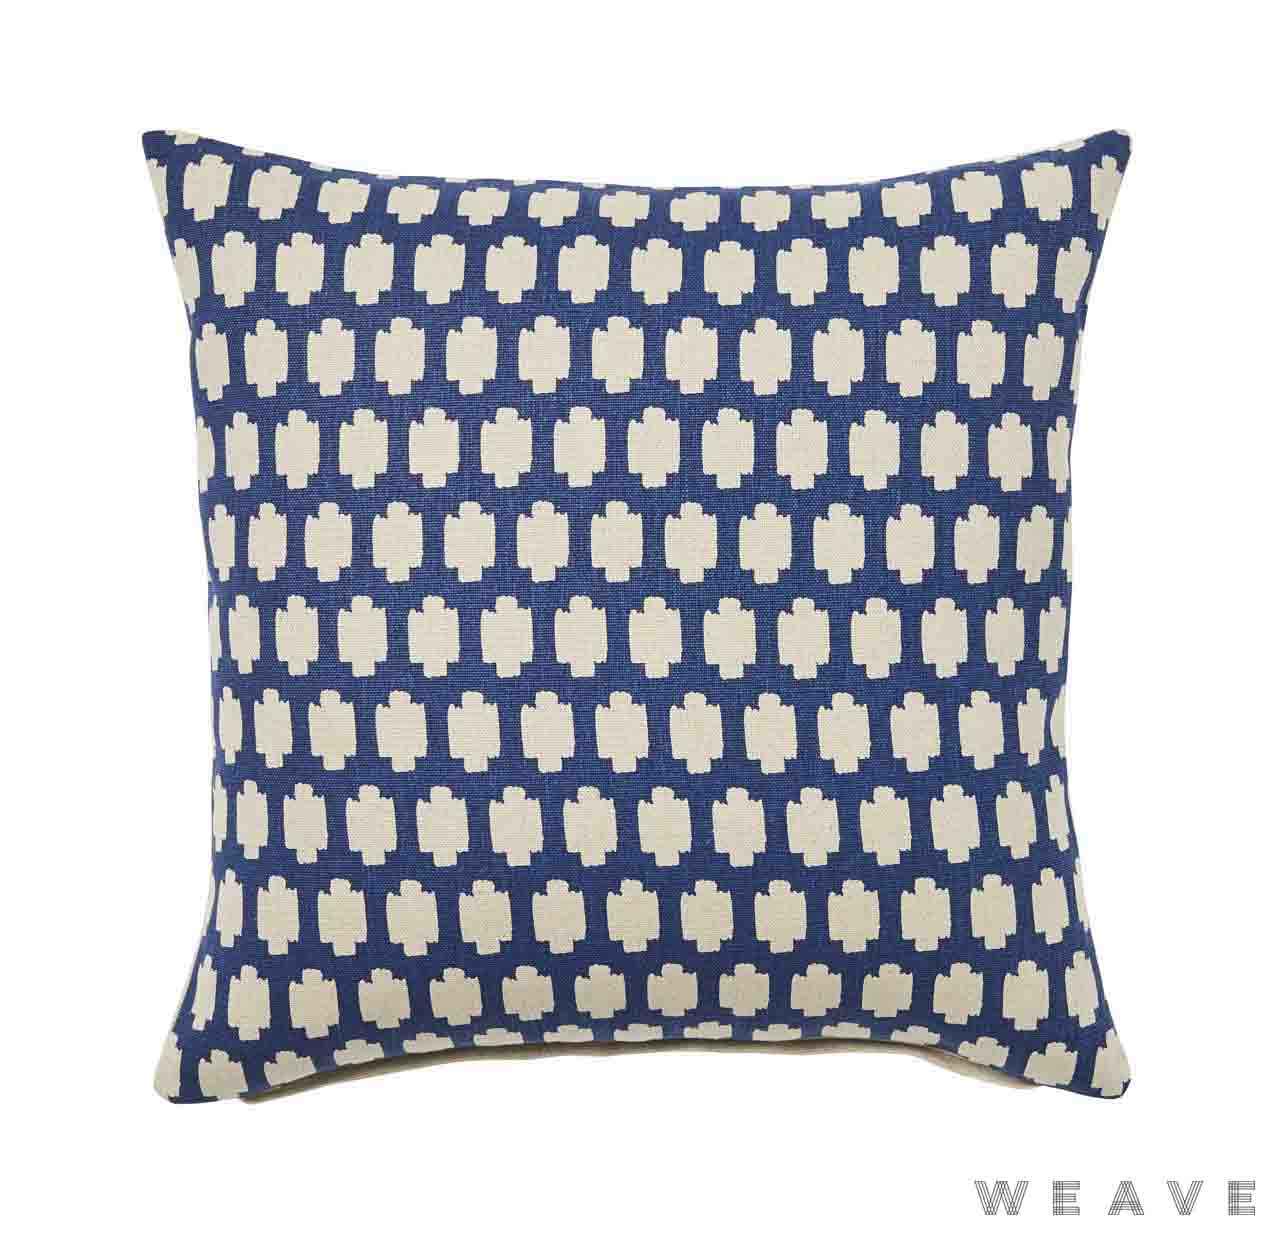 Weave - Madi Cushion - Pigment (Pack of 2)  | Cusion Fabric - Blue, Quatrefoil, Weave, Crosses